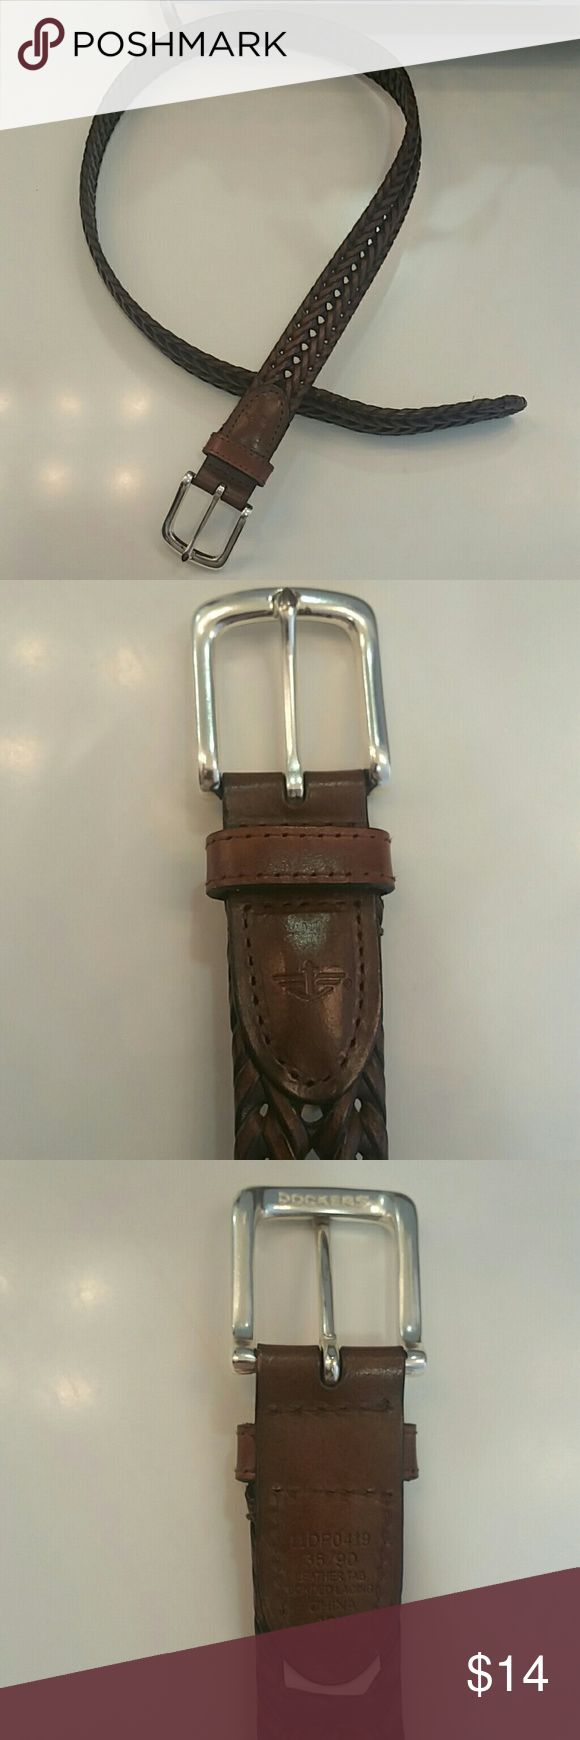 """Dockers braided leather belt Brown braided leather belt, no issues, worn twice.  Like new condition. Leather is 42"""" from end to tip. Buckle is silver toned. Dockers Accessories Belts"""